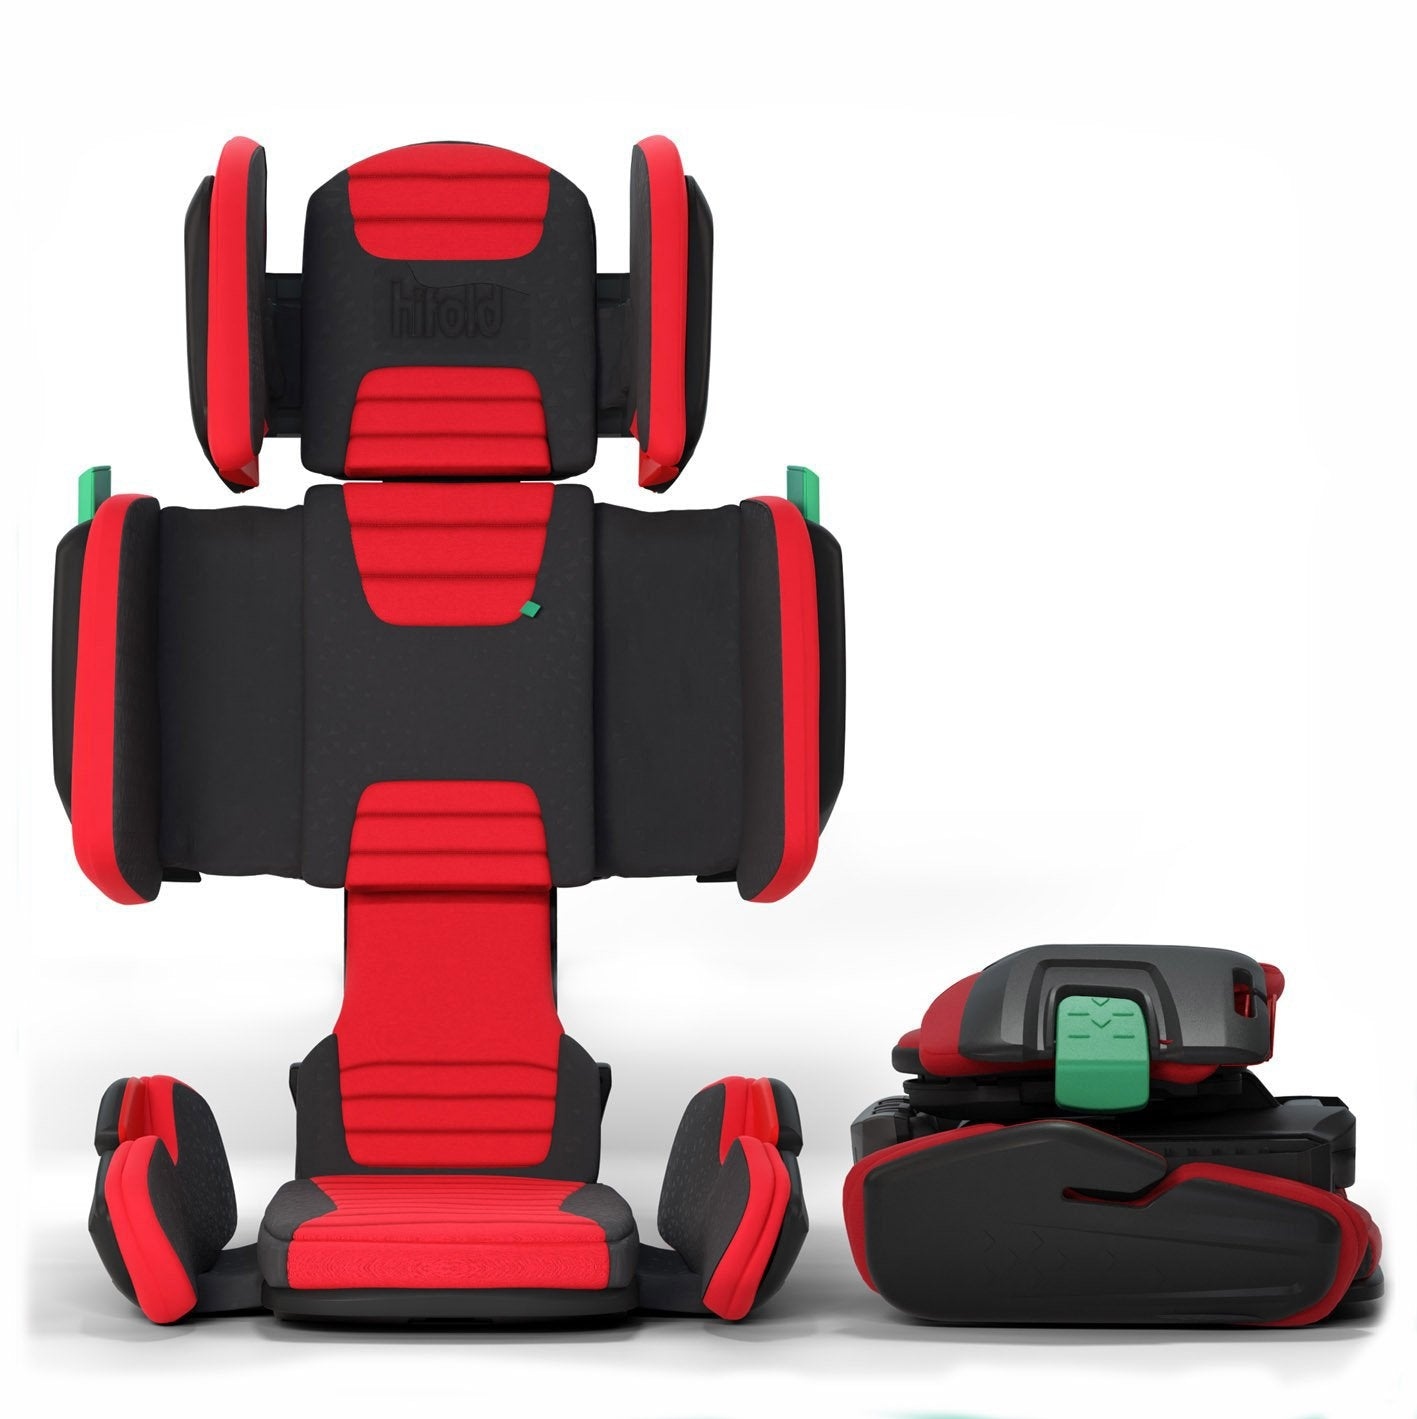 mifold hifold the fit-and-fold booster - mifold